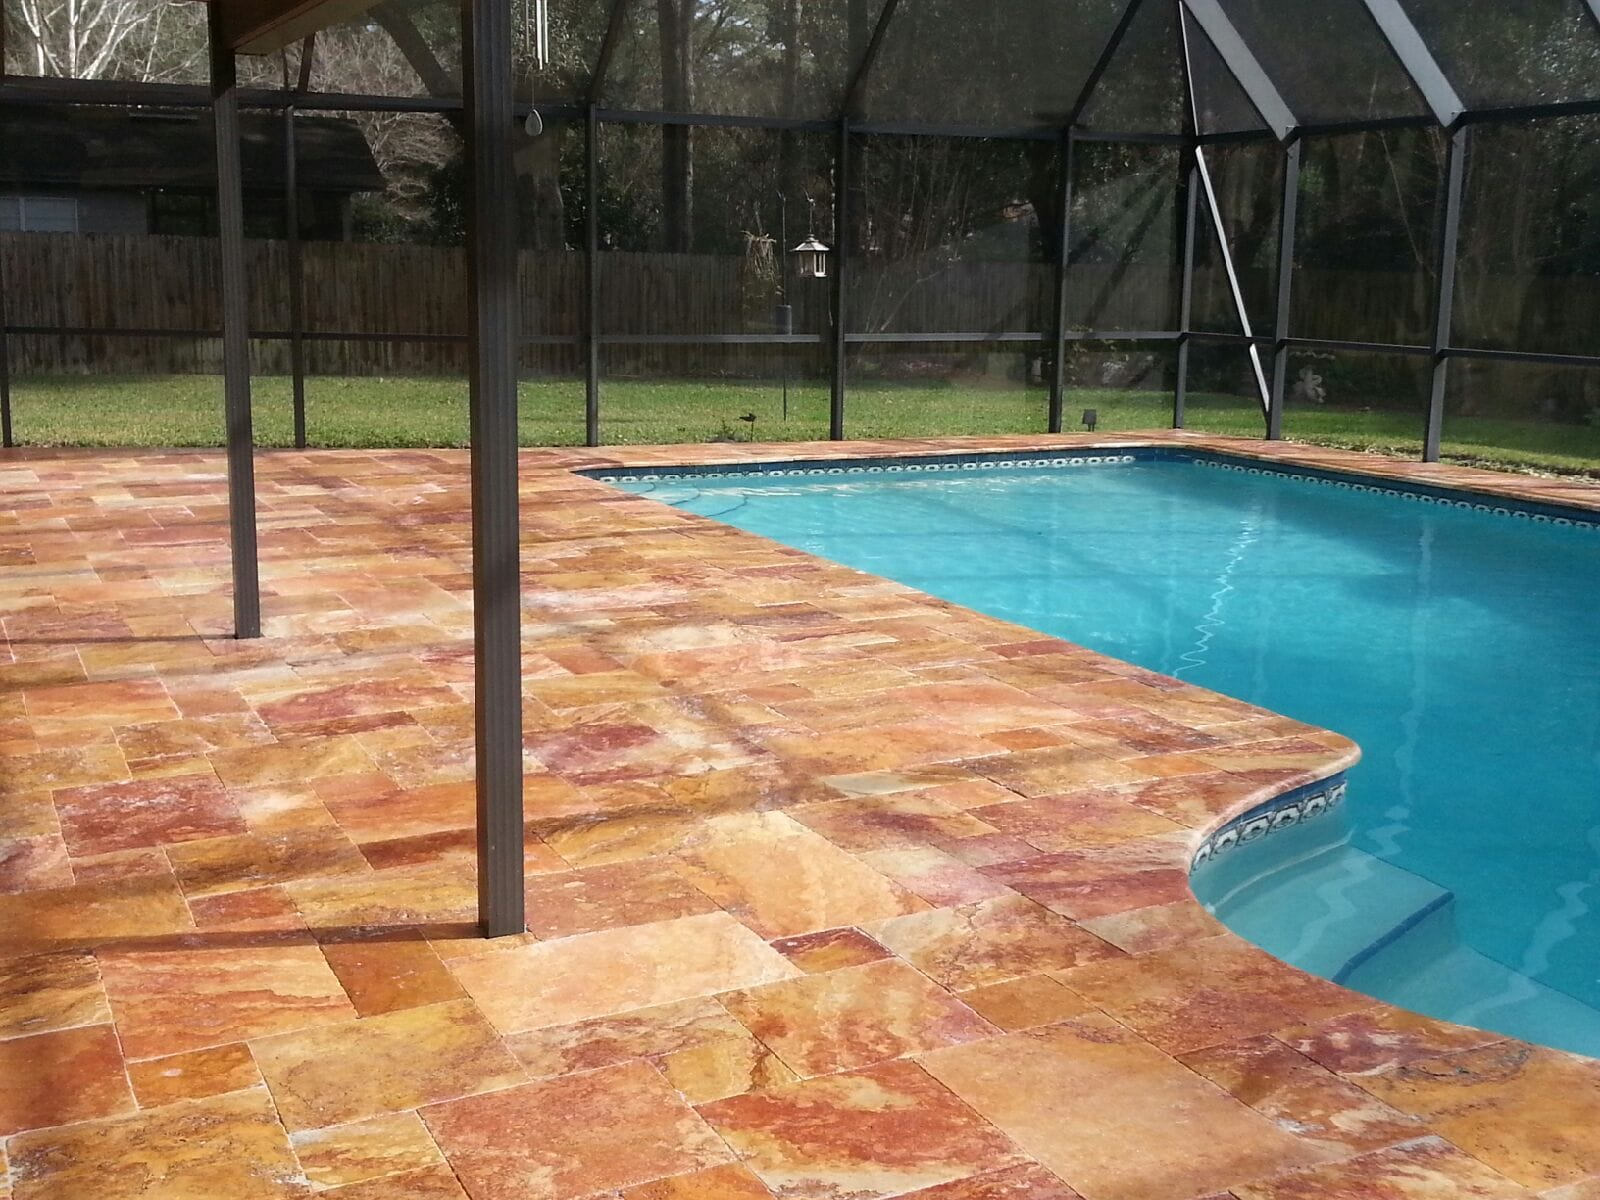 Travertine Pool Deck in Autumn Leaves